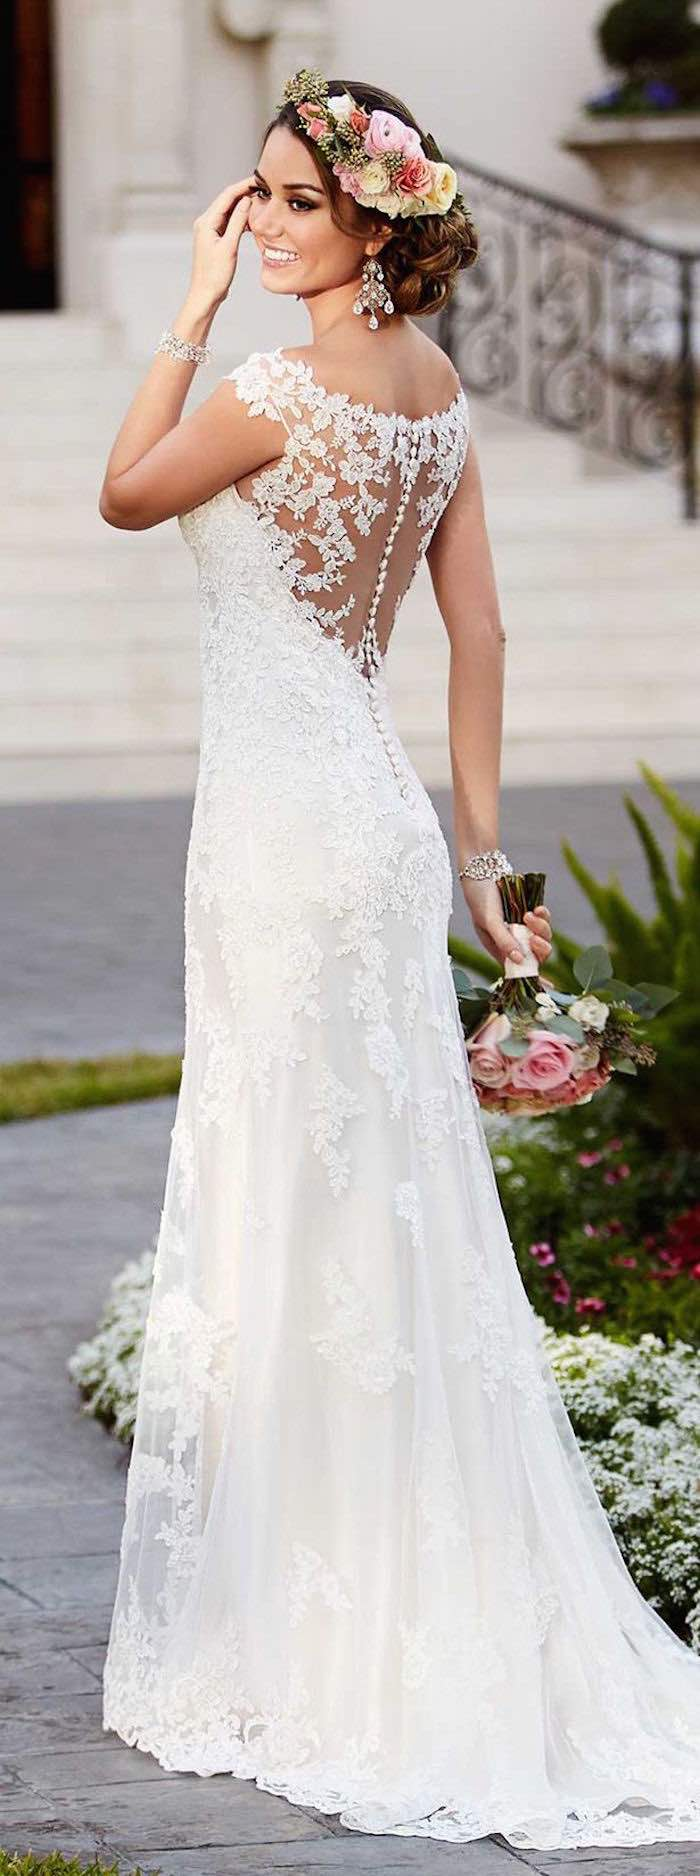 Large Of Summer Dresses For Weddings